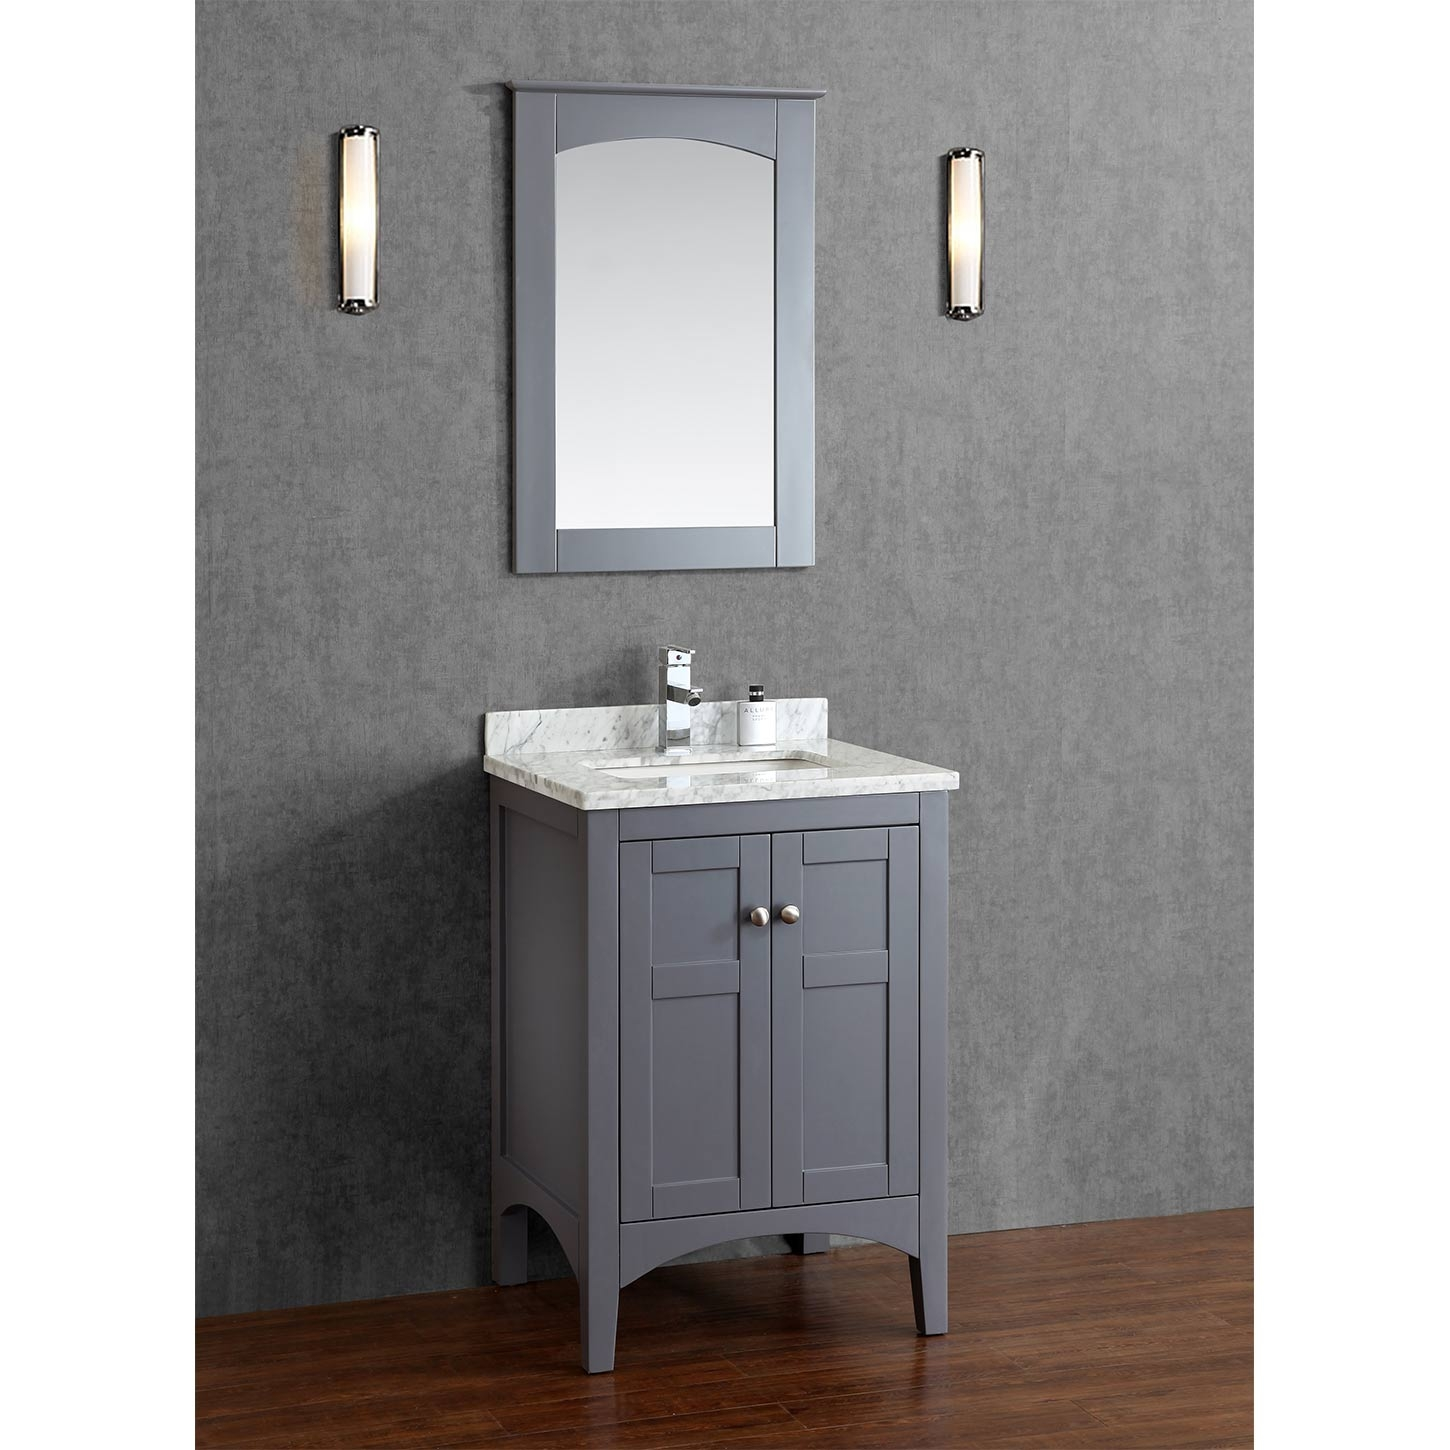 24 X 18 Inch Bathroom Vanity